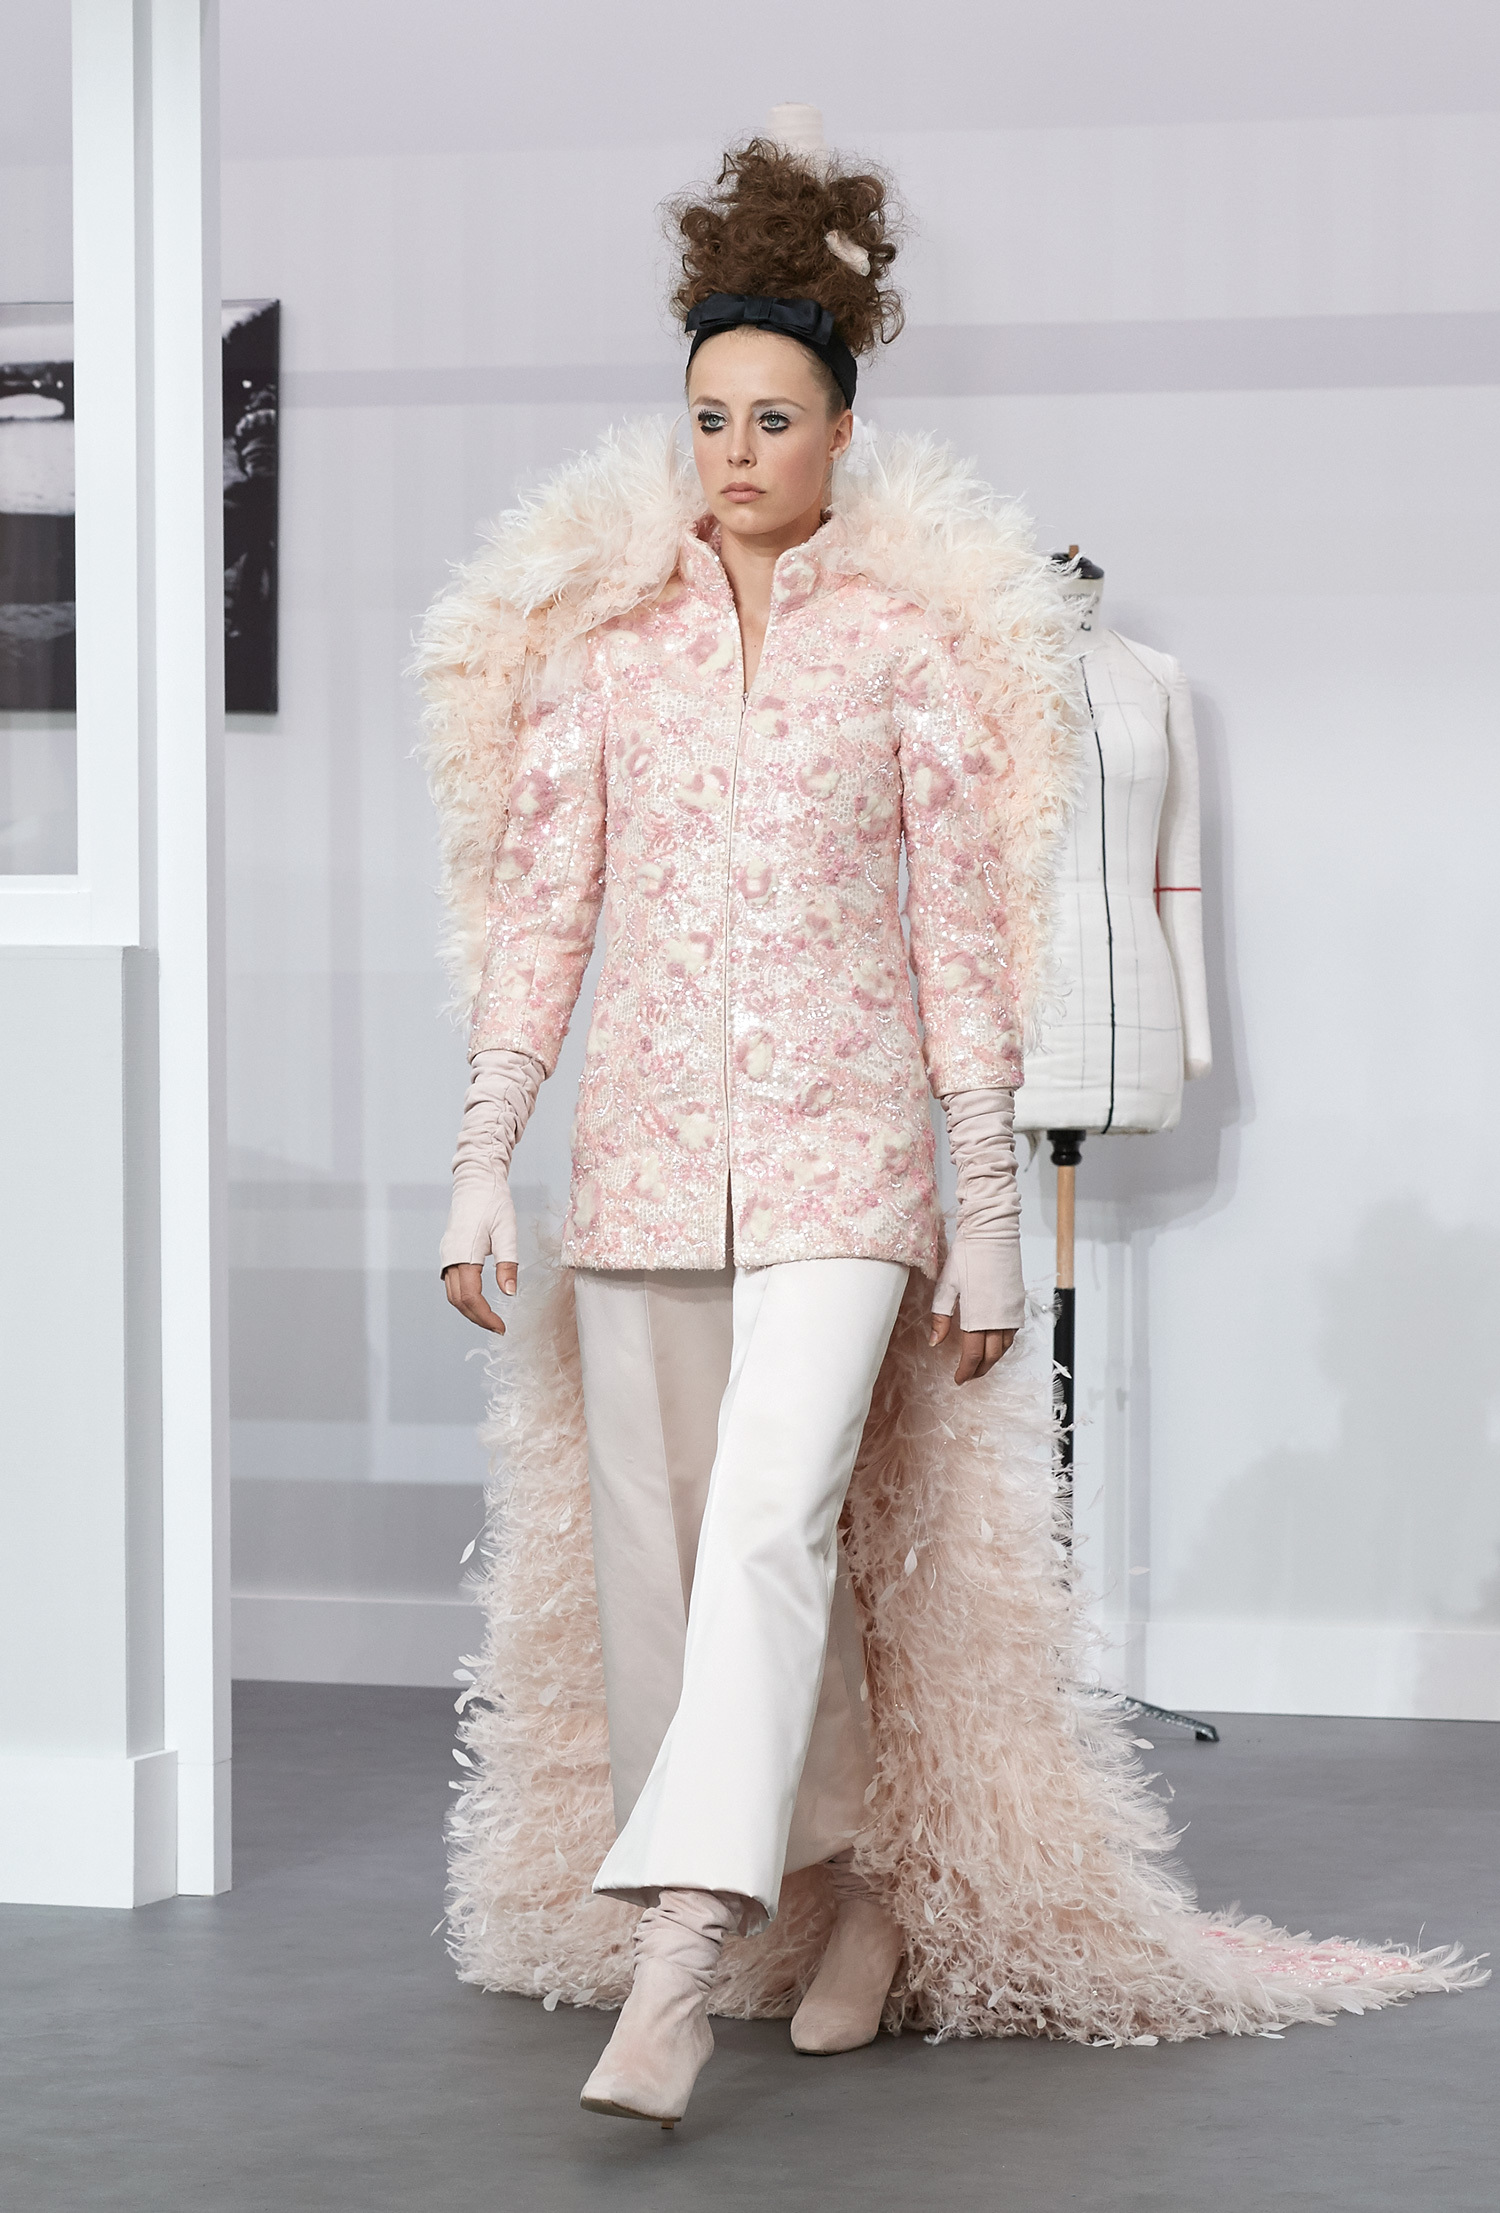 behind every great man: chanel at paris couture - i-D